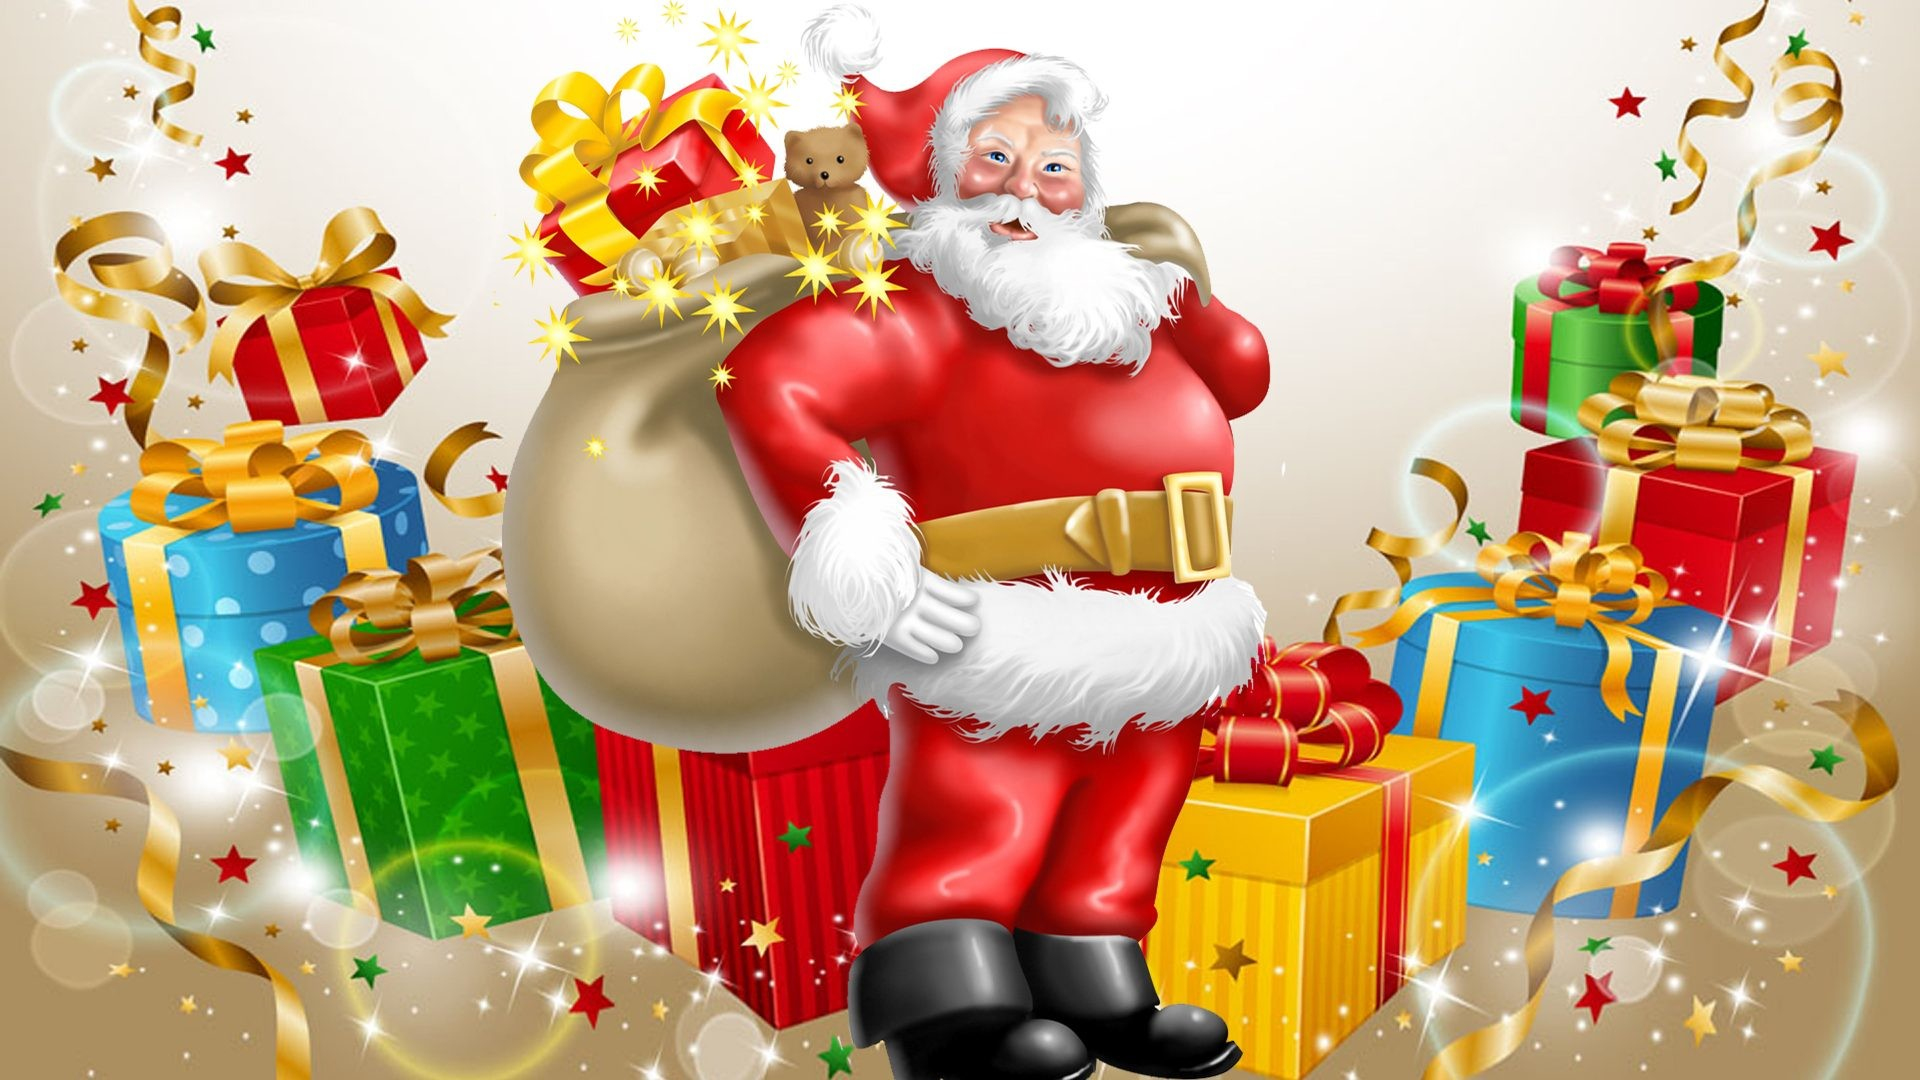 Santa Claus Hd 3d Wallpapers 1080p